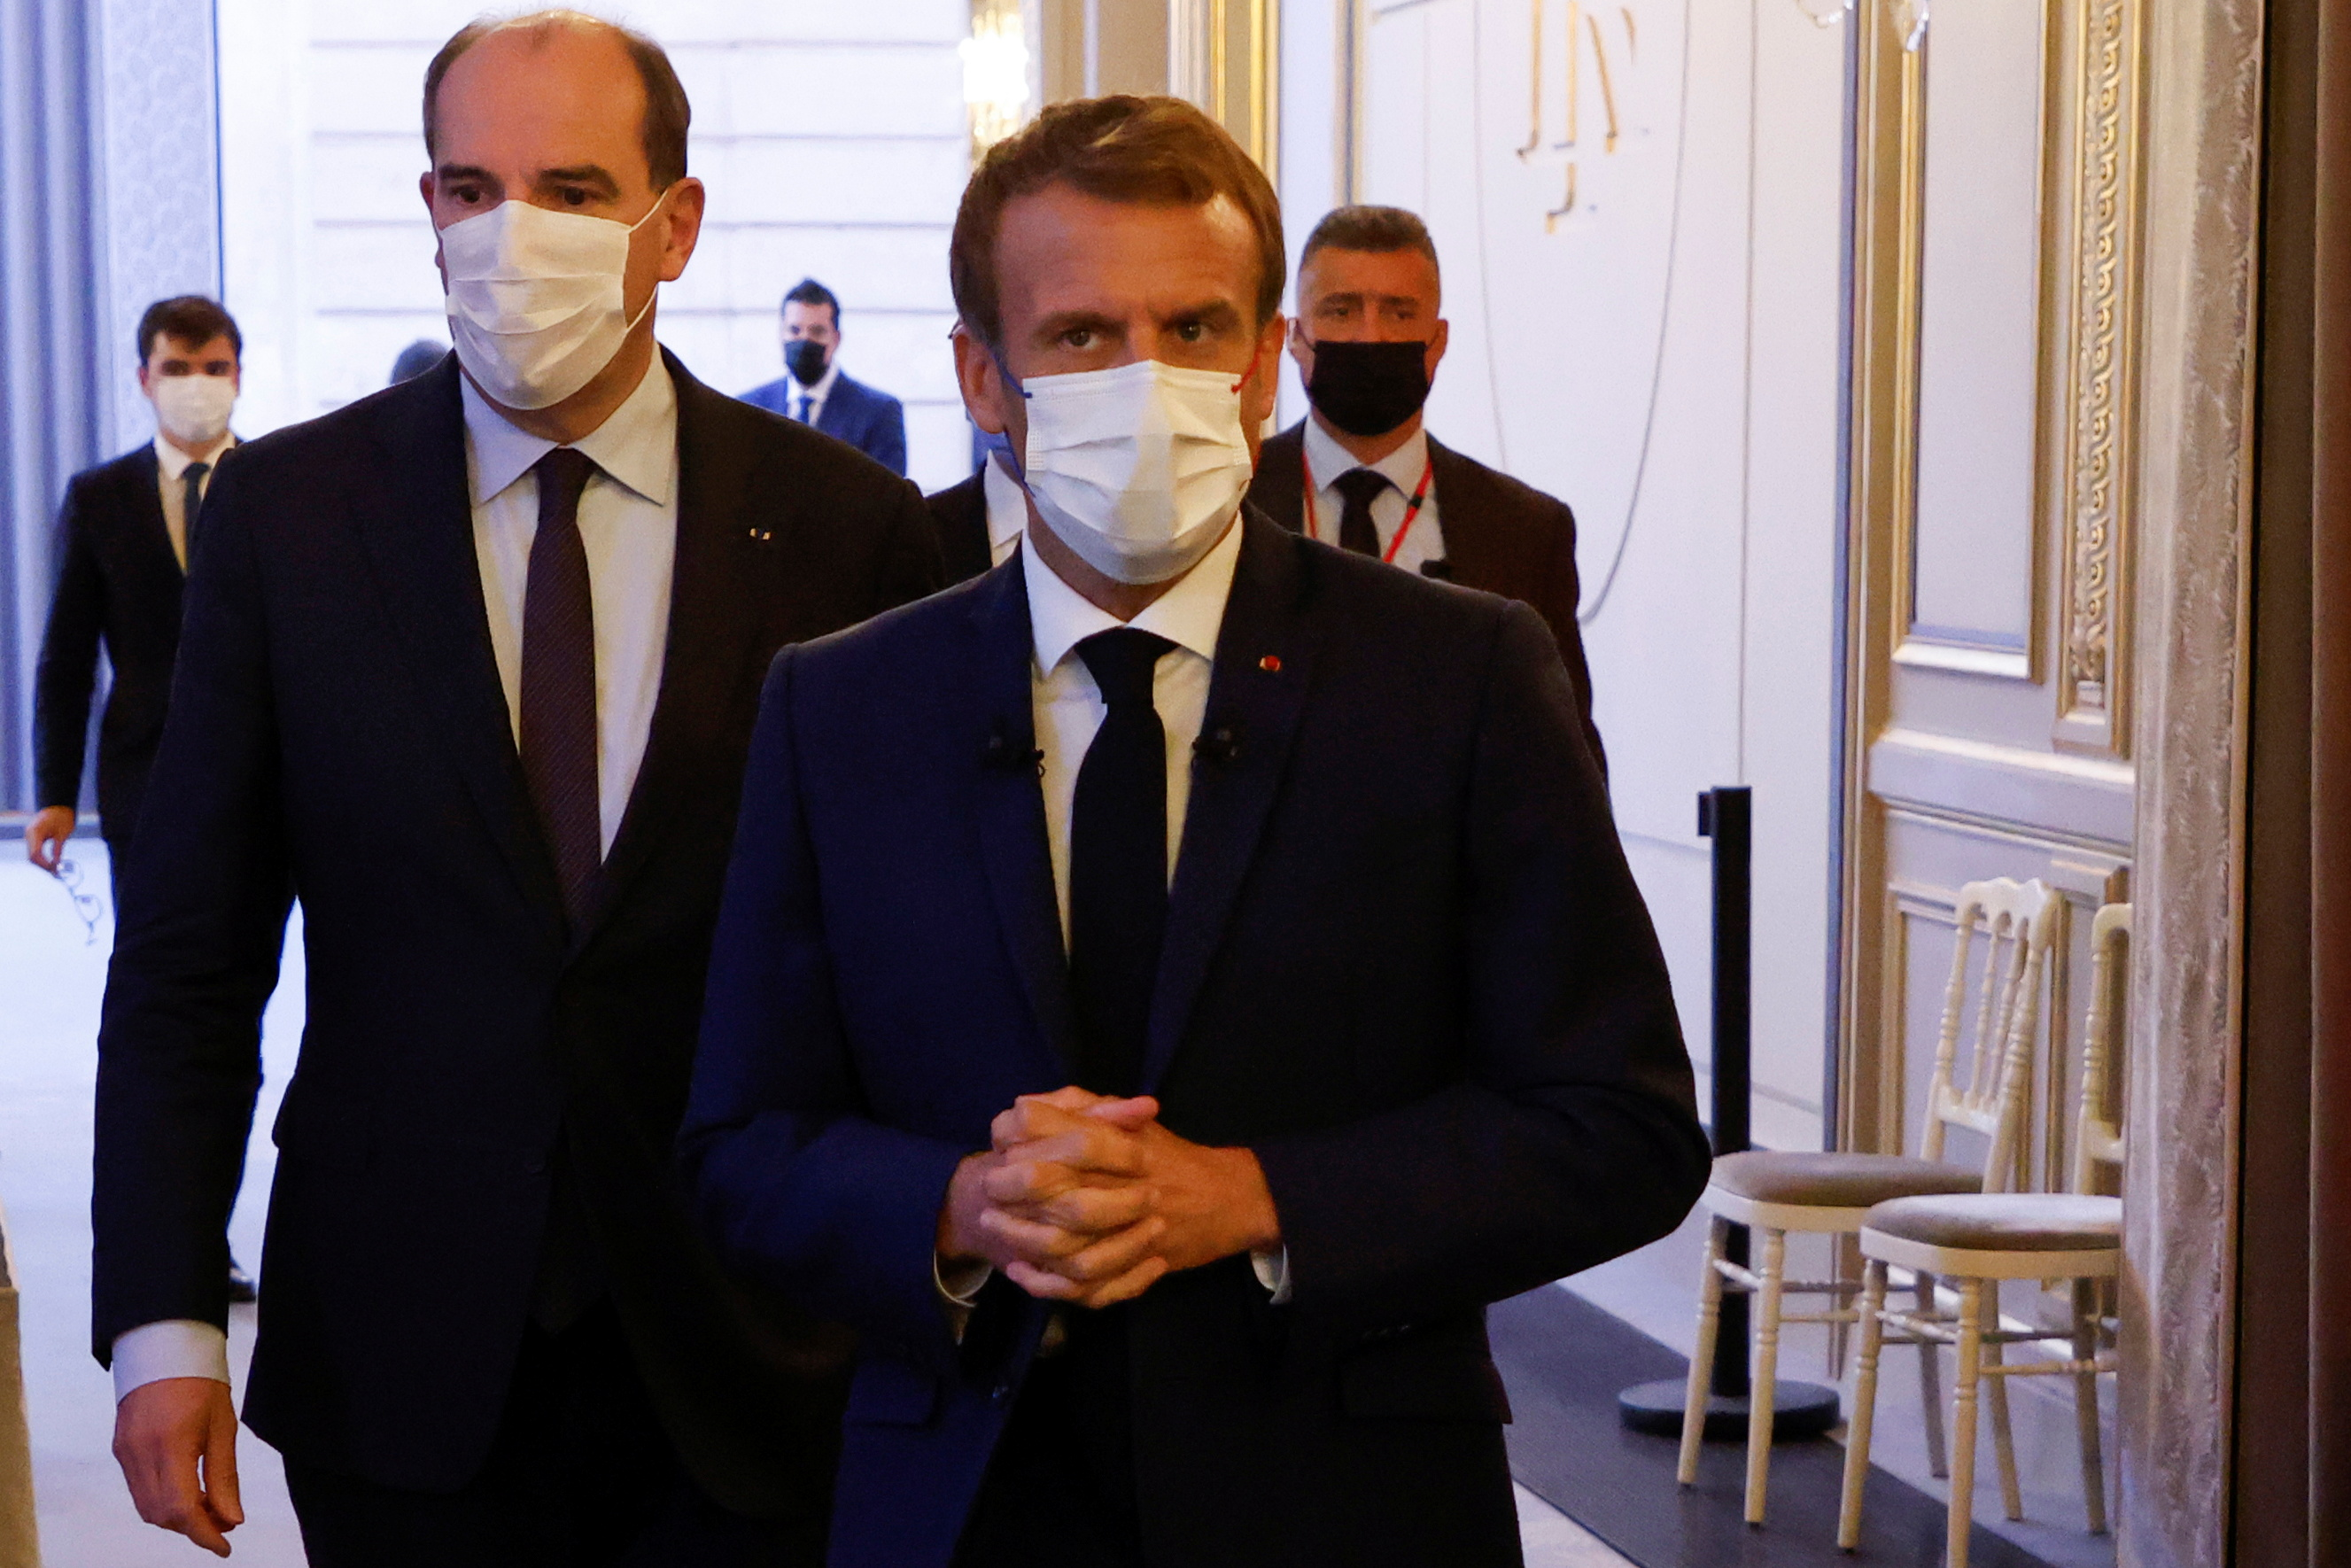 French Prime Minister Jean Castex and French President Emmanuel Macron arrive for the presentation of the